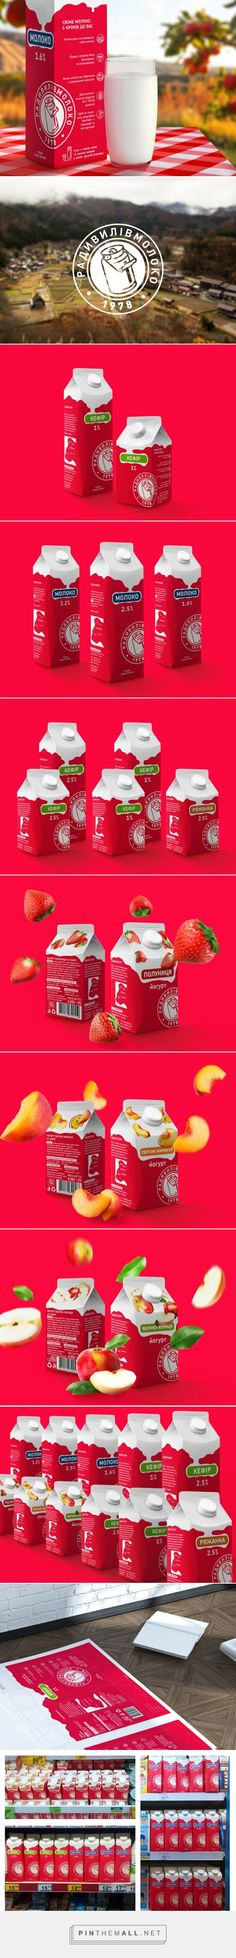 Radyvylivmilk Milk Packaging designed by Graphinya Design (Ukraine)